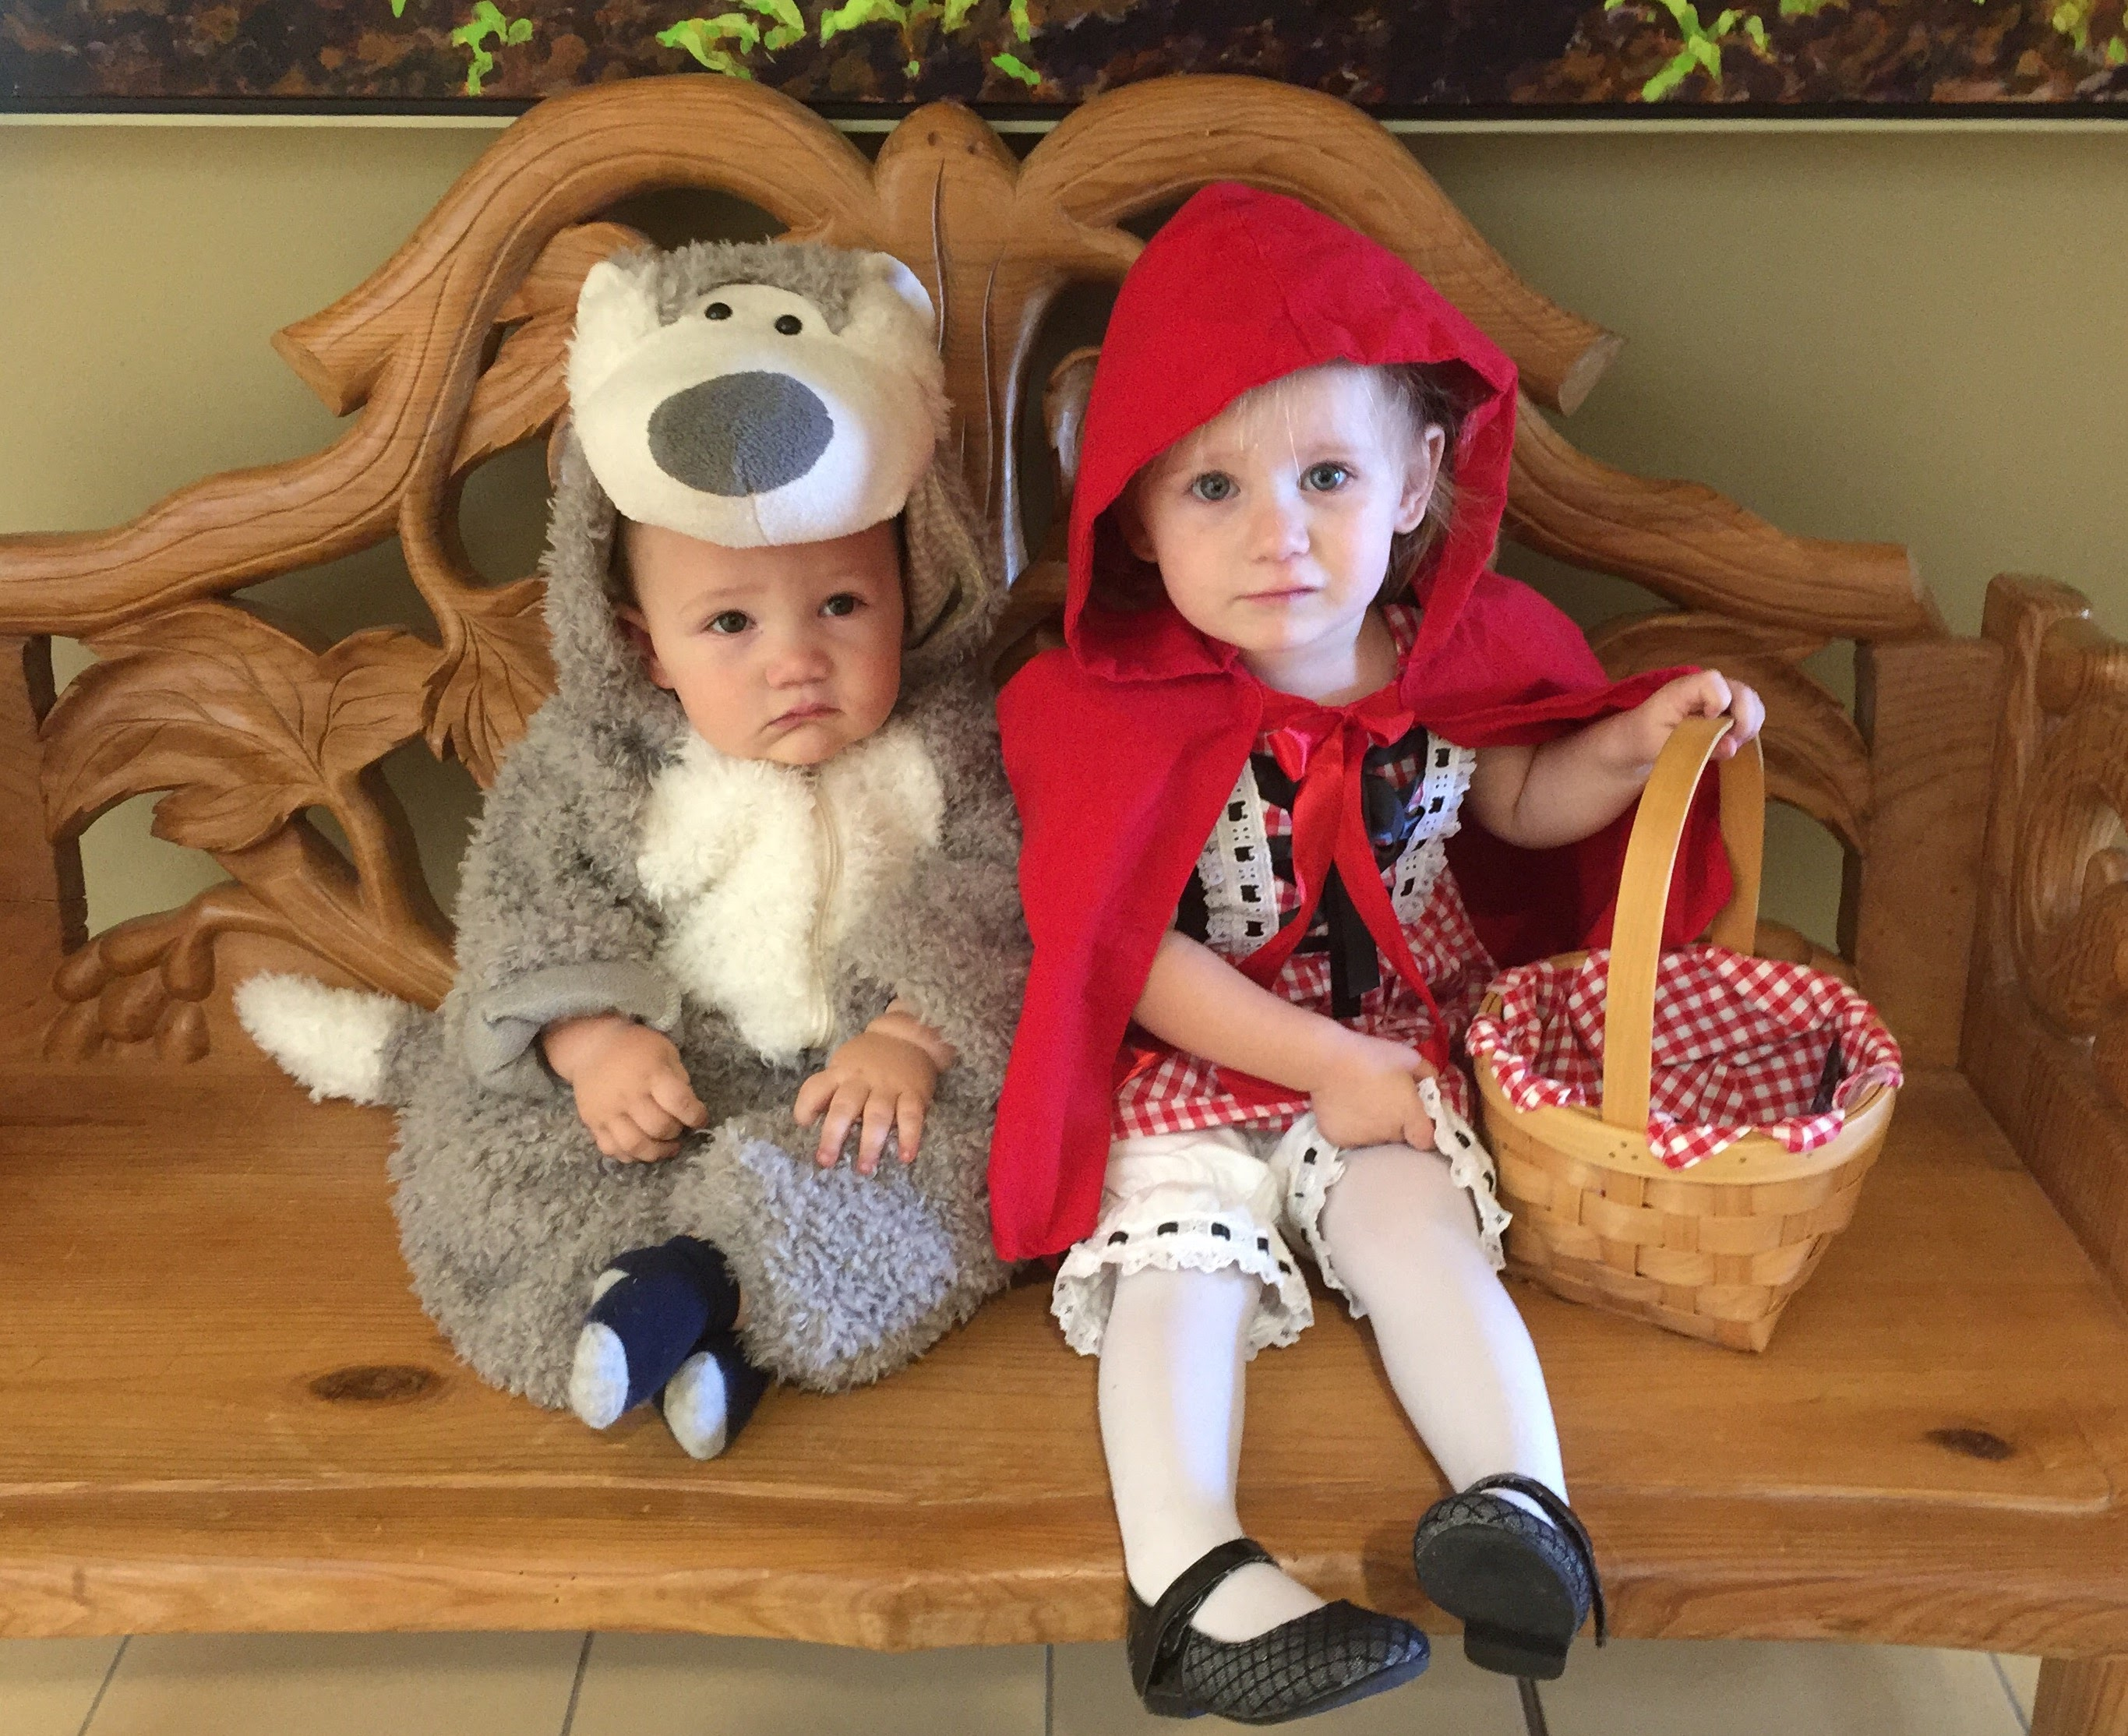 little red riding hood & the big bad wolf (a.k.a. princess paradise bear)